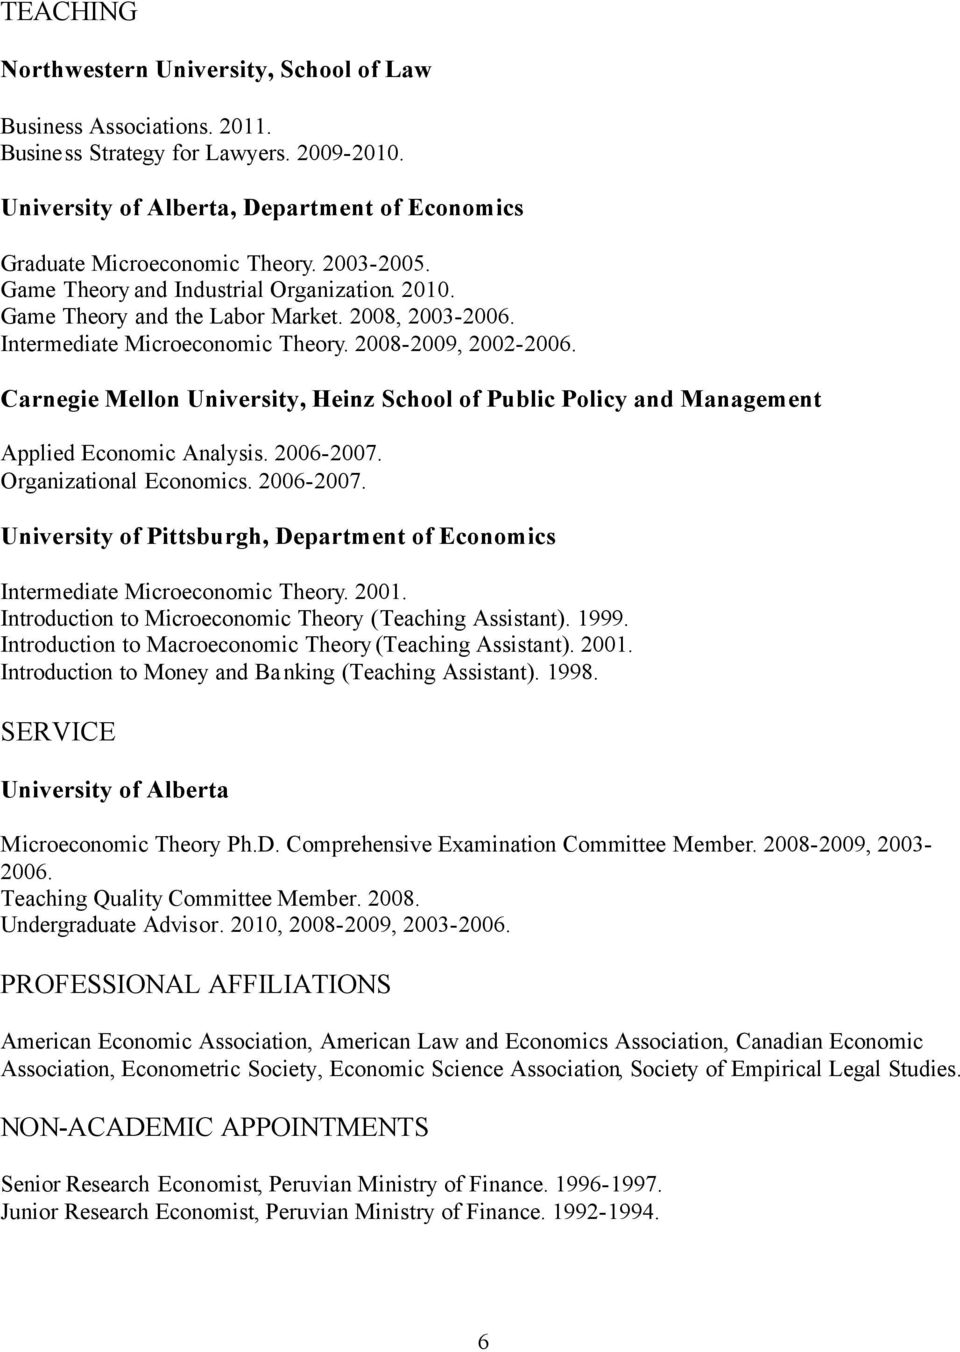 Carnegie Mellon University, Heinz School of Public Policy and Management Applied Economic Analysis. 2006-2007. Organizational Economics. 2006-2007. University of Pittsburgh, Department of Economics Intermediate Microeconomic Theory.